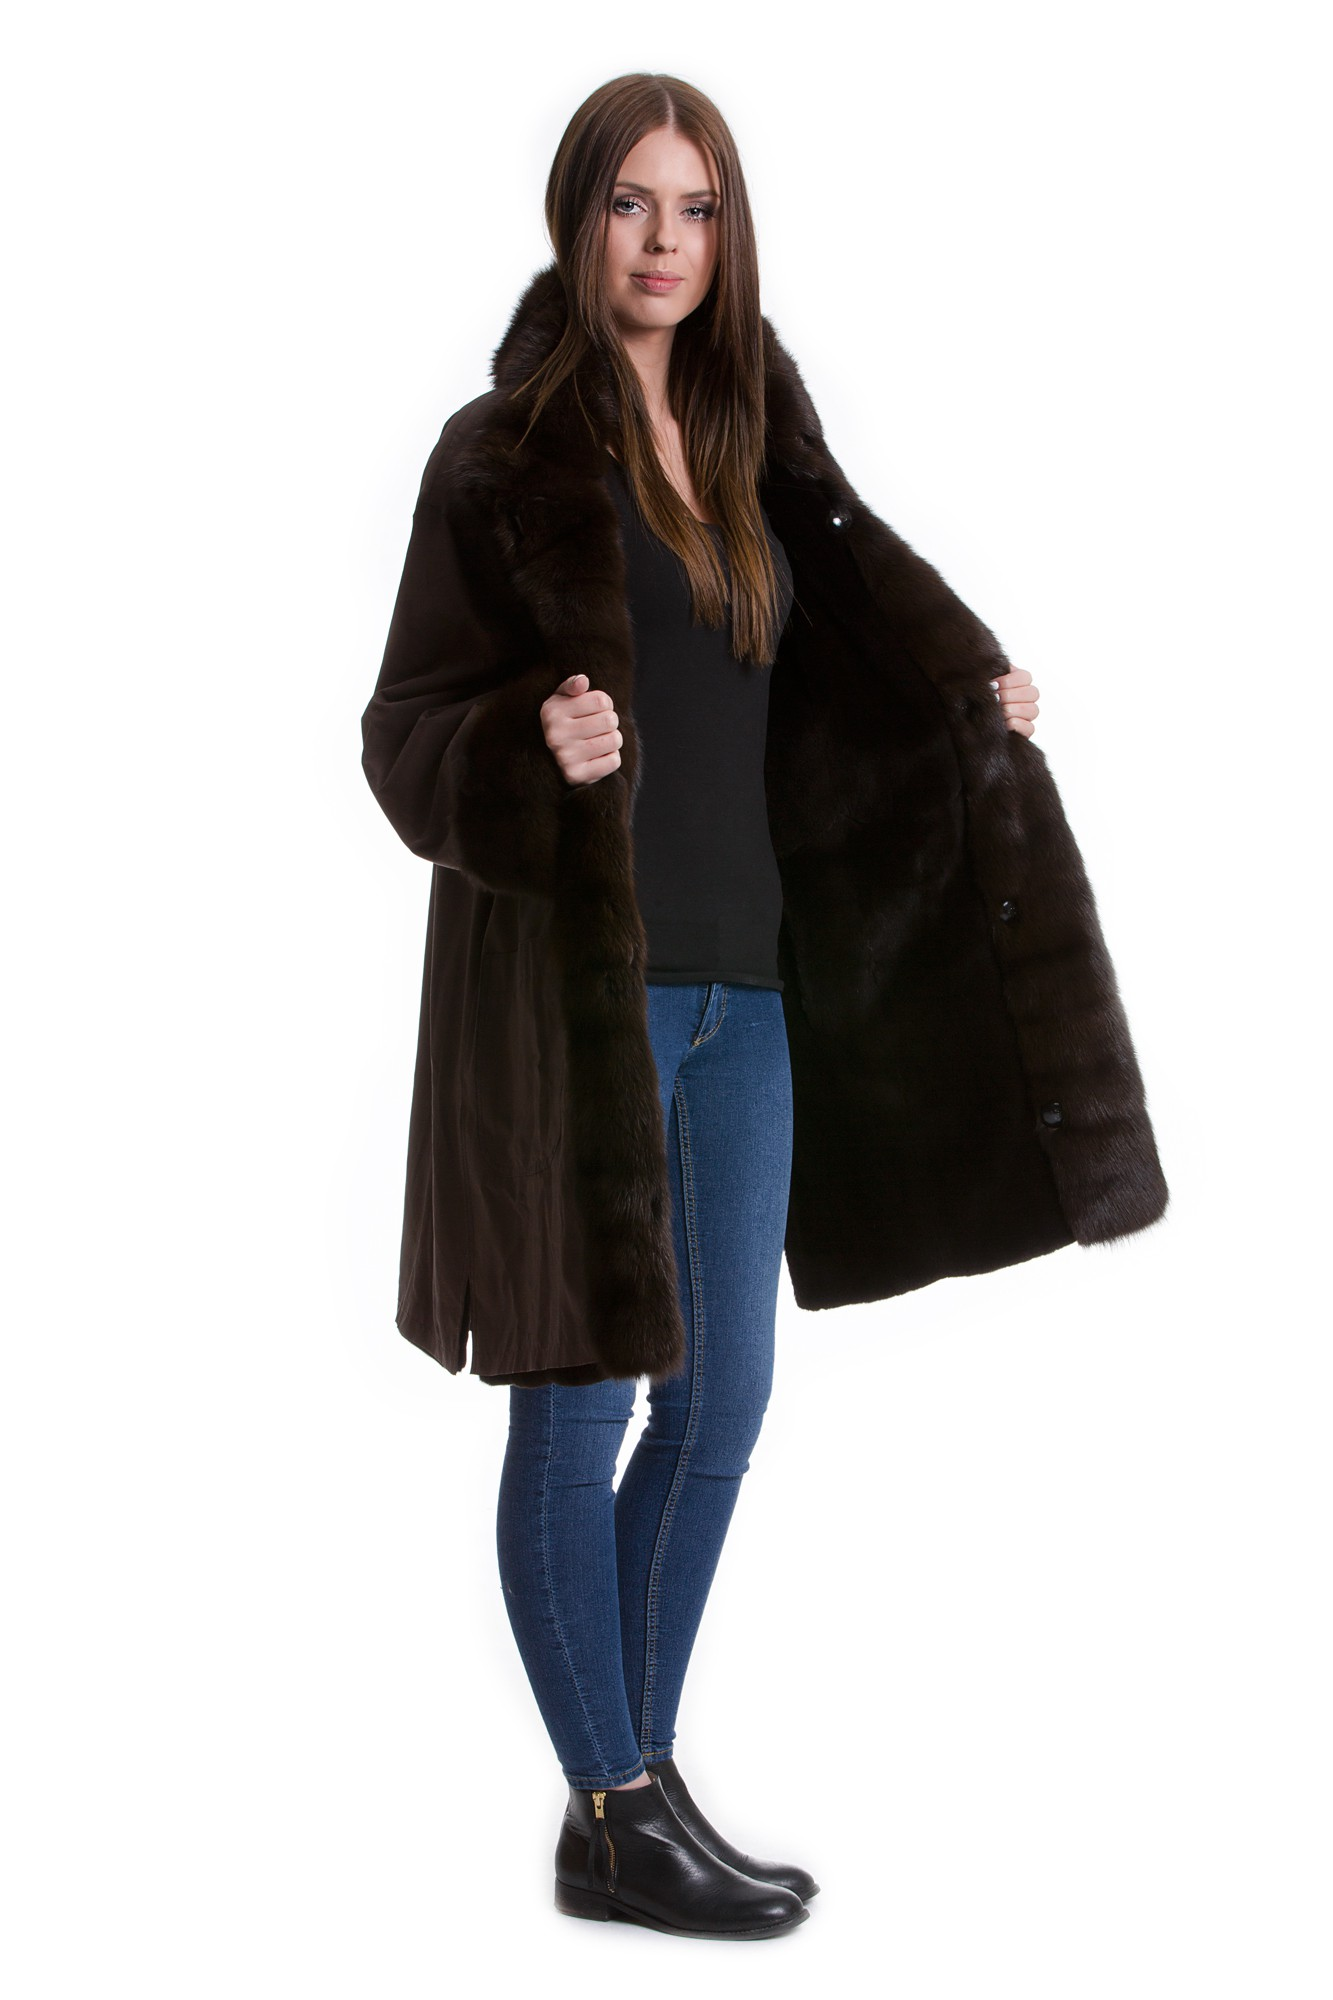 reversible jacket velvet weasel hair with sable fur fur collar 42 44 furs. Black Bedroom Furniture Sets. Home Design Ideas